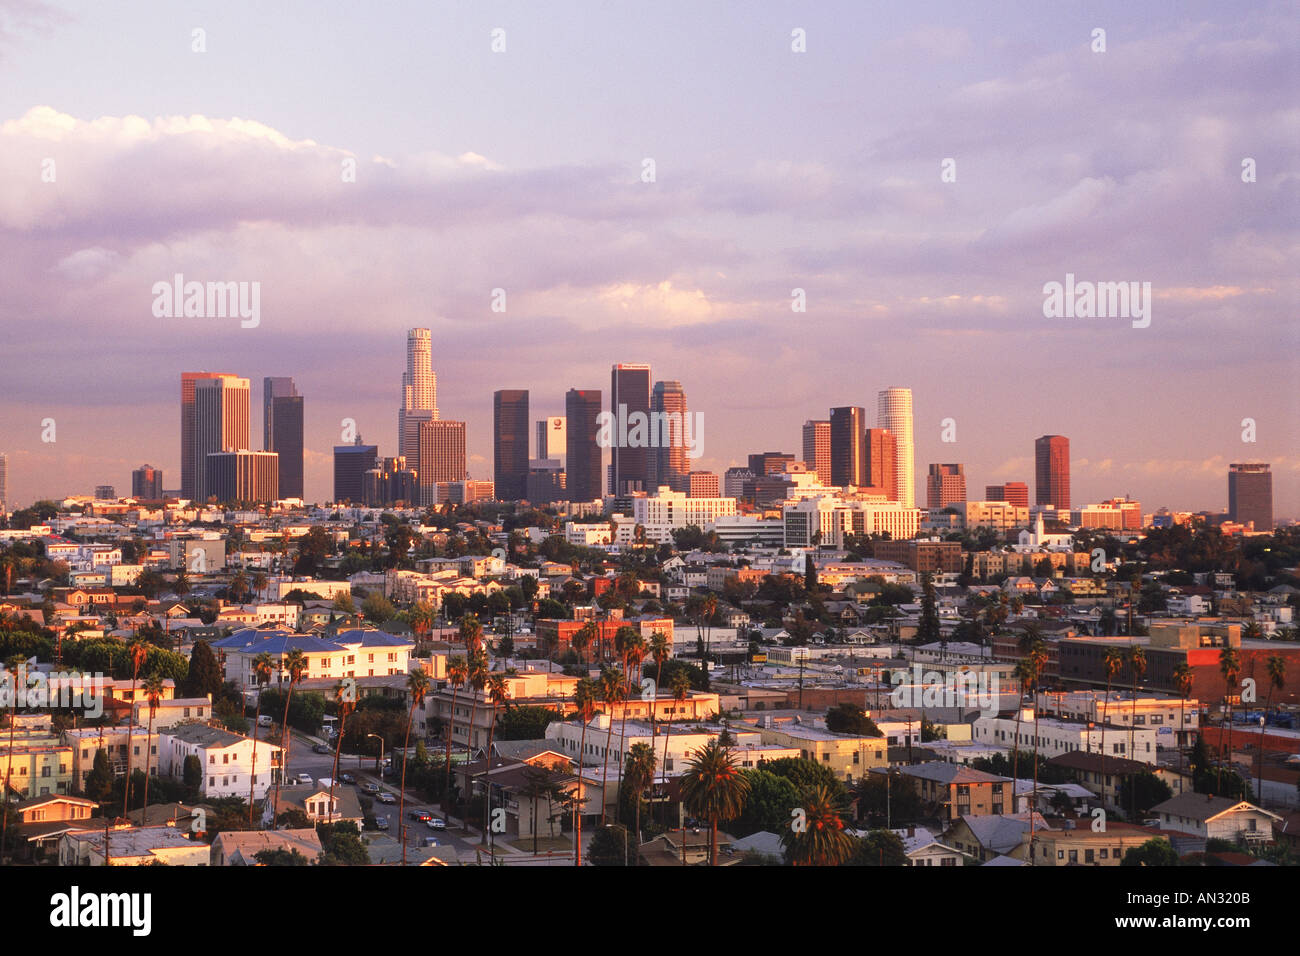 Overview of East Los Angeles suburbs with downtown Civic Center above the urban sprawl at sunset - Stock Image